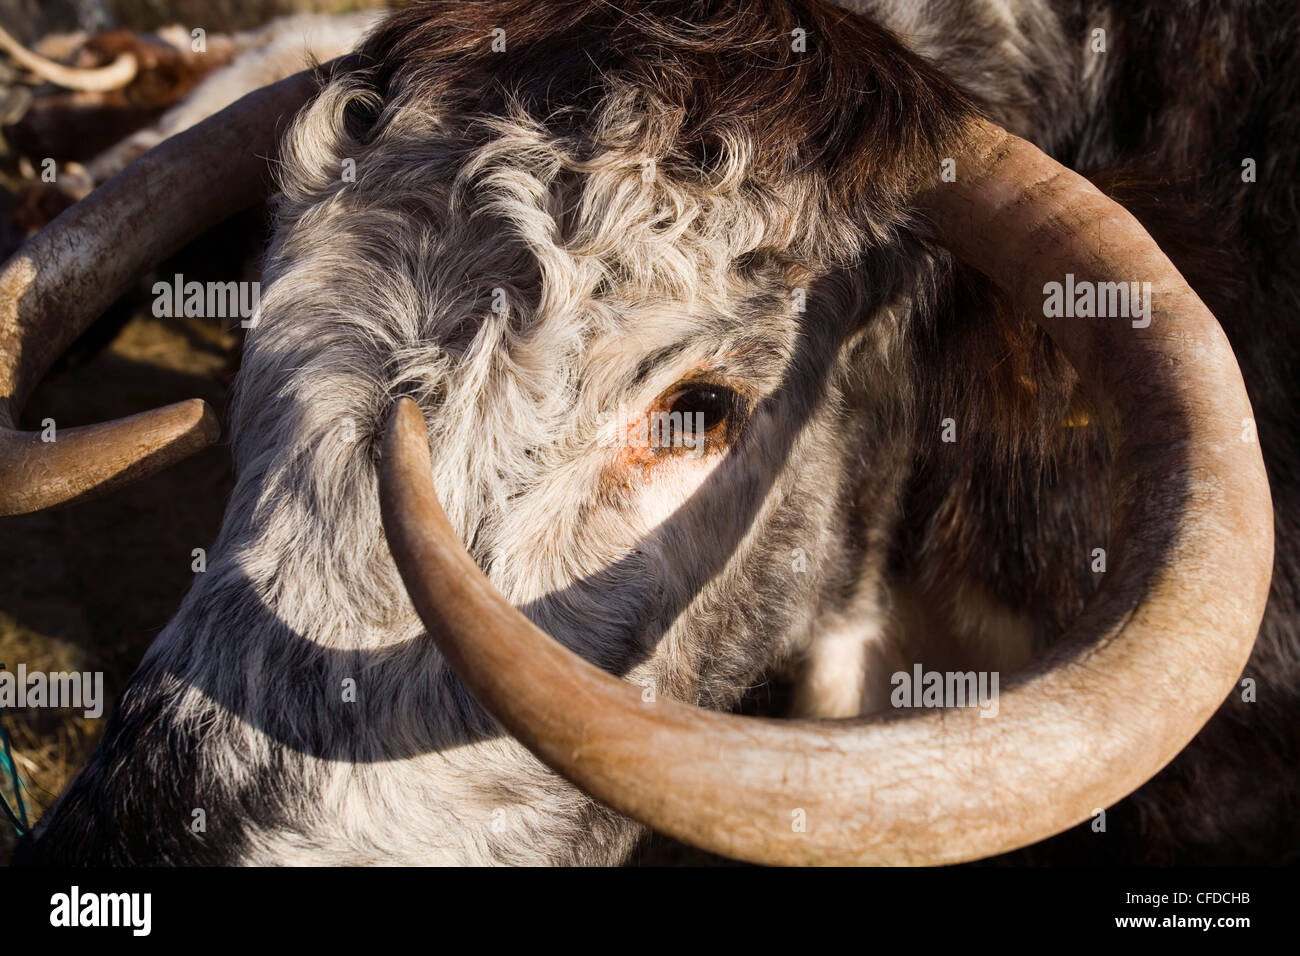 LONG HORNED COW - Stock Image